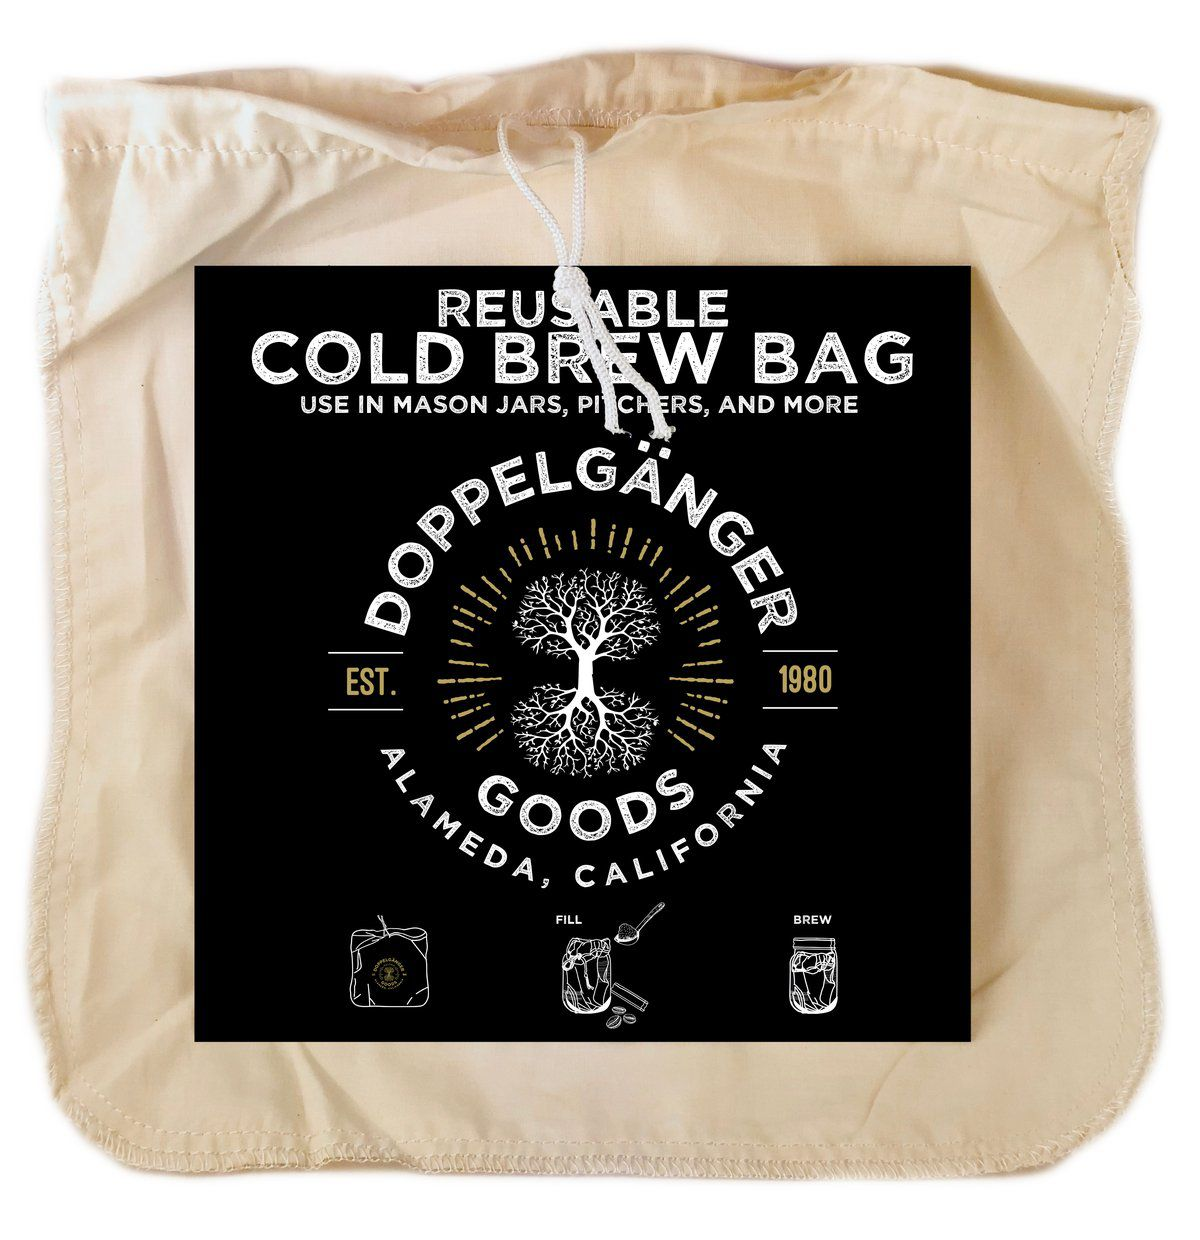 Cold brew filter bag made of organic cotton